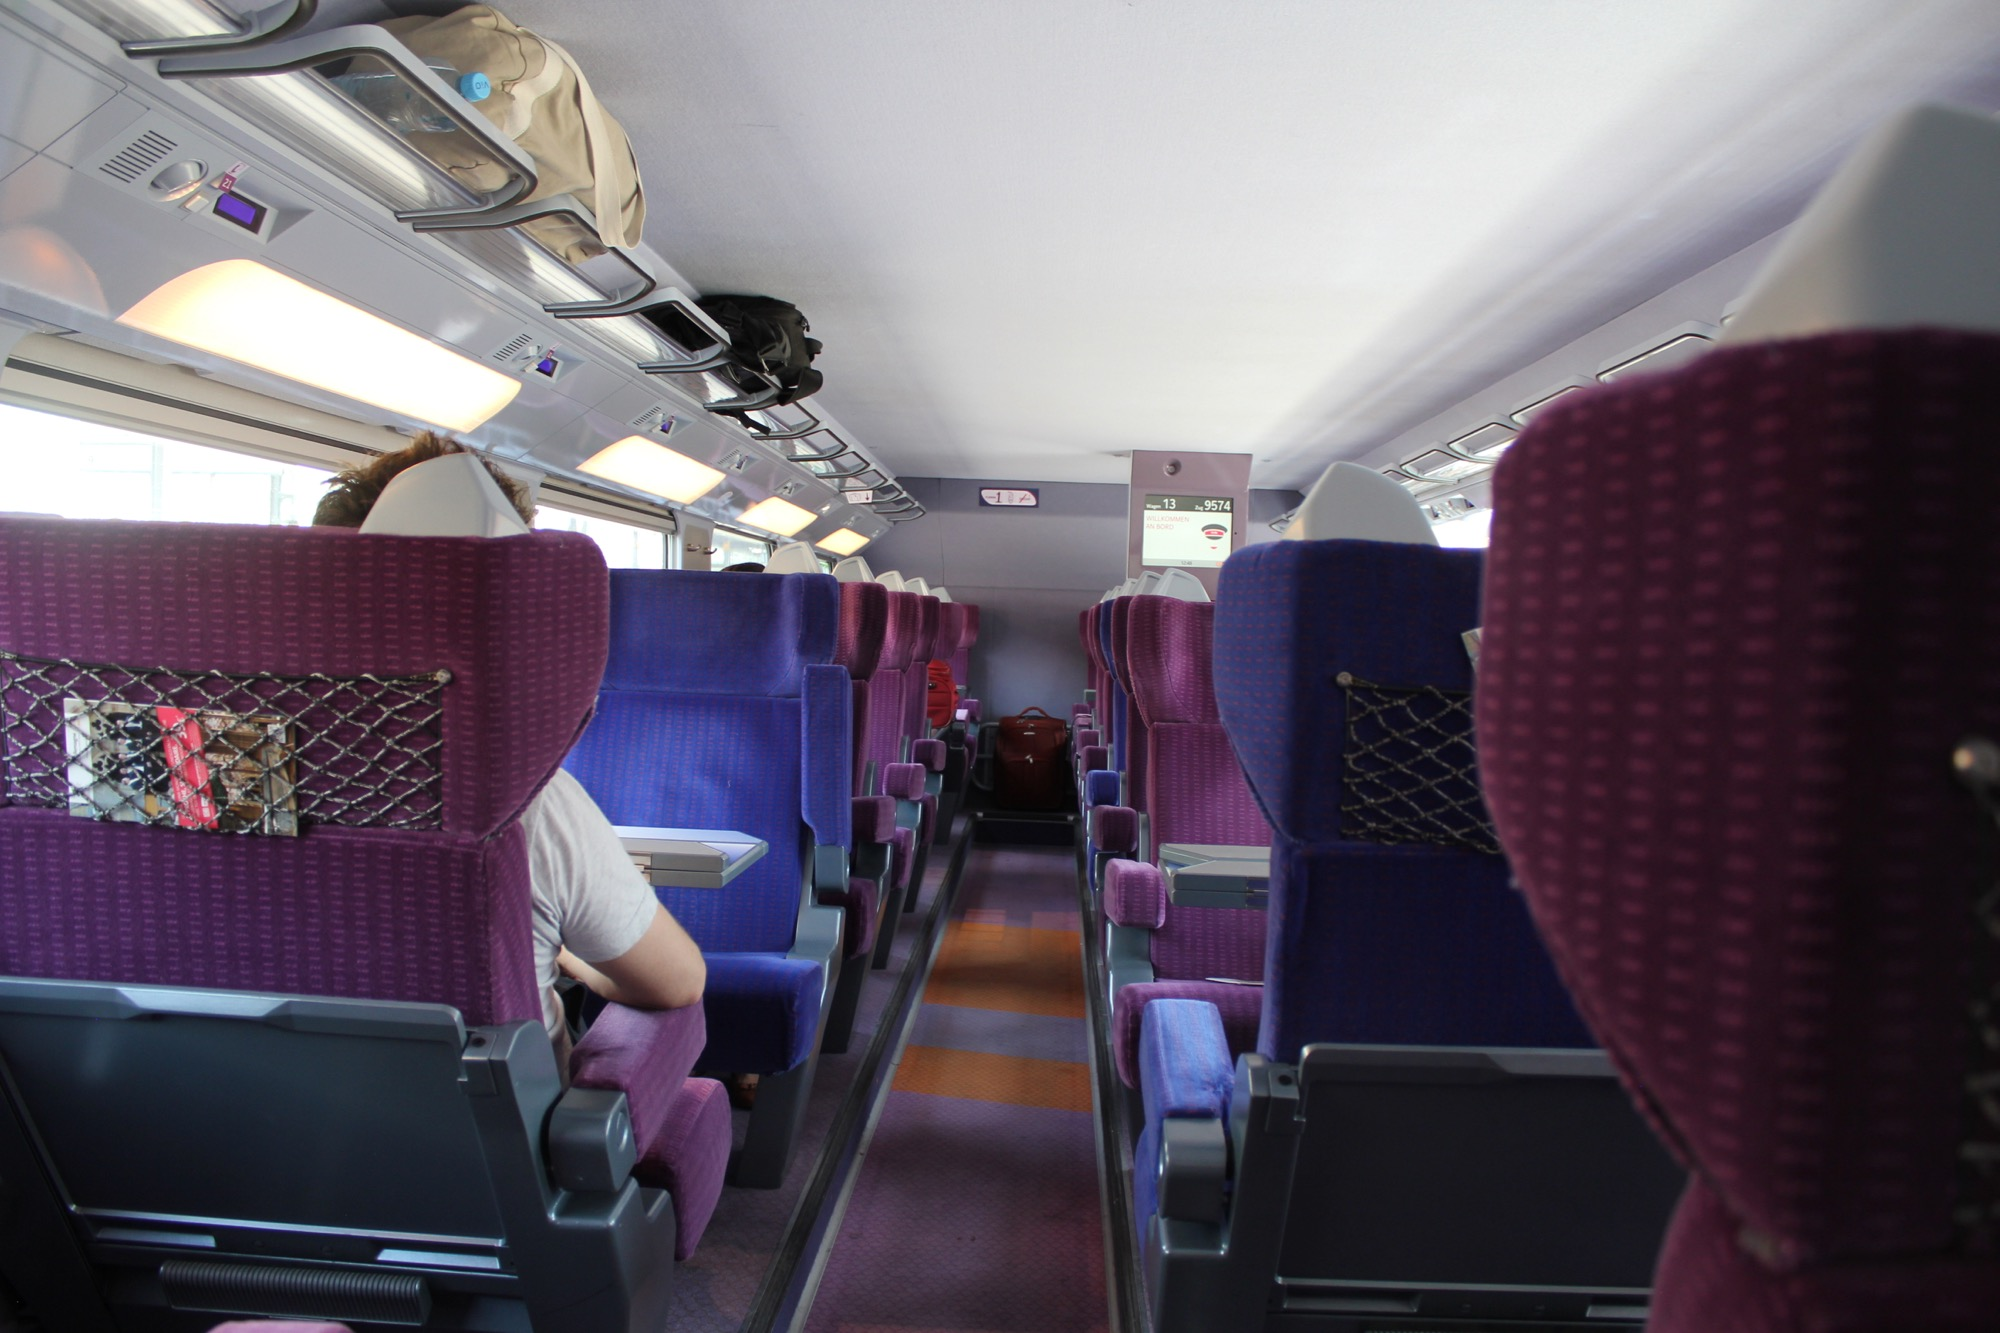 velvet 5in1 air sofa bed reviews cream brocade tgv first class from stuttgart to paris live and let 39s fly